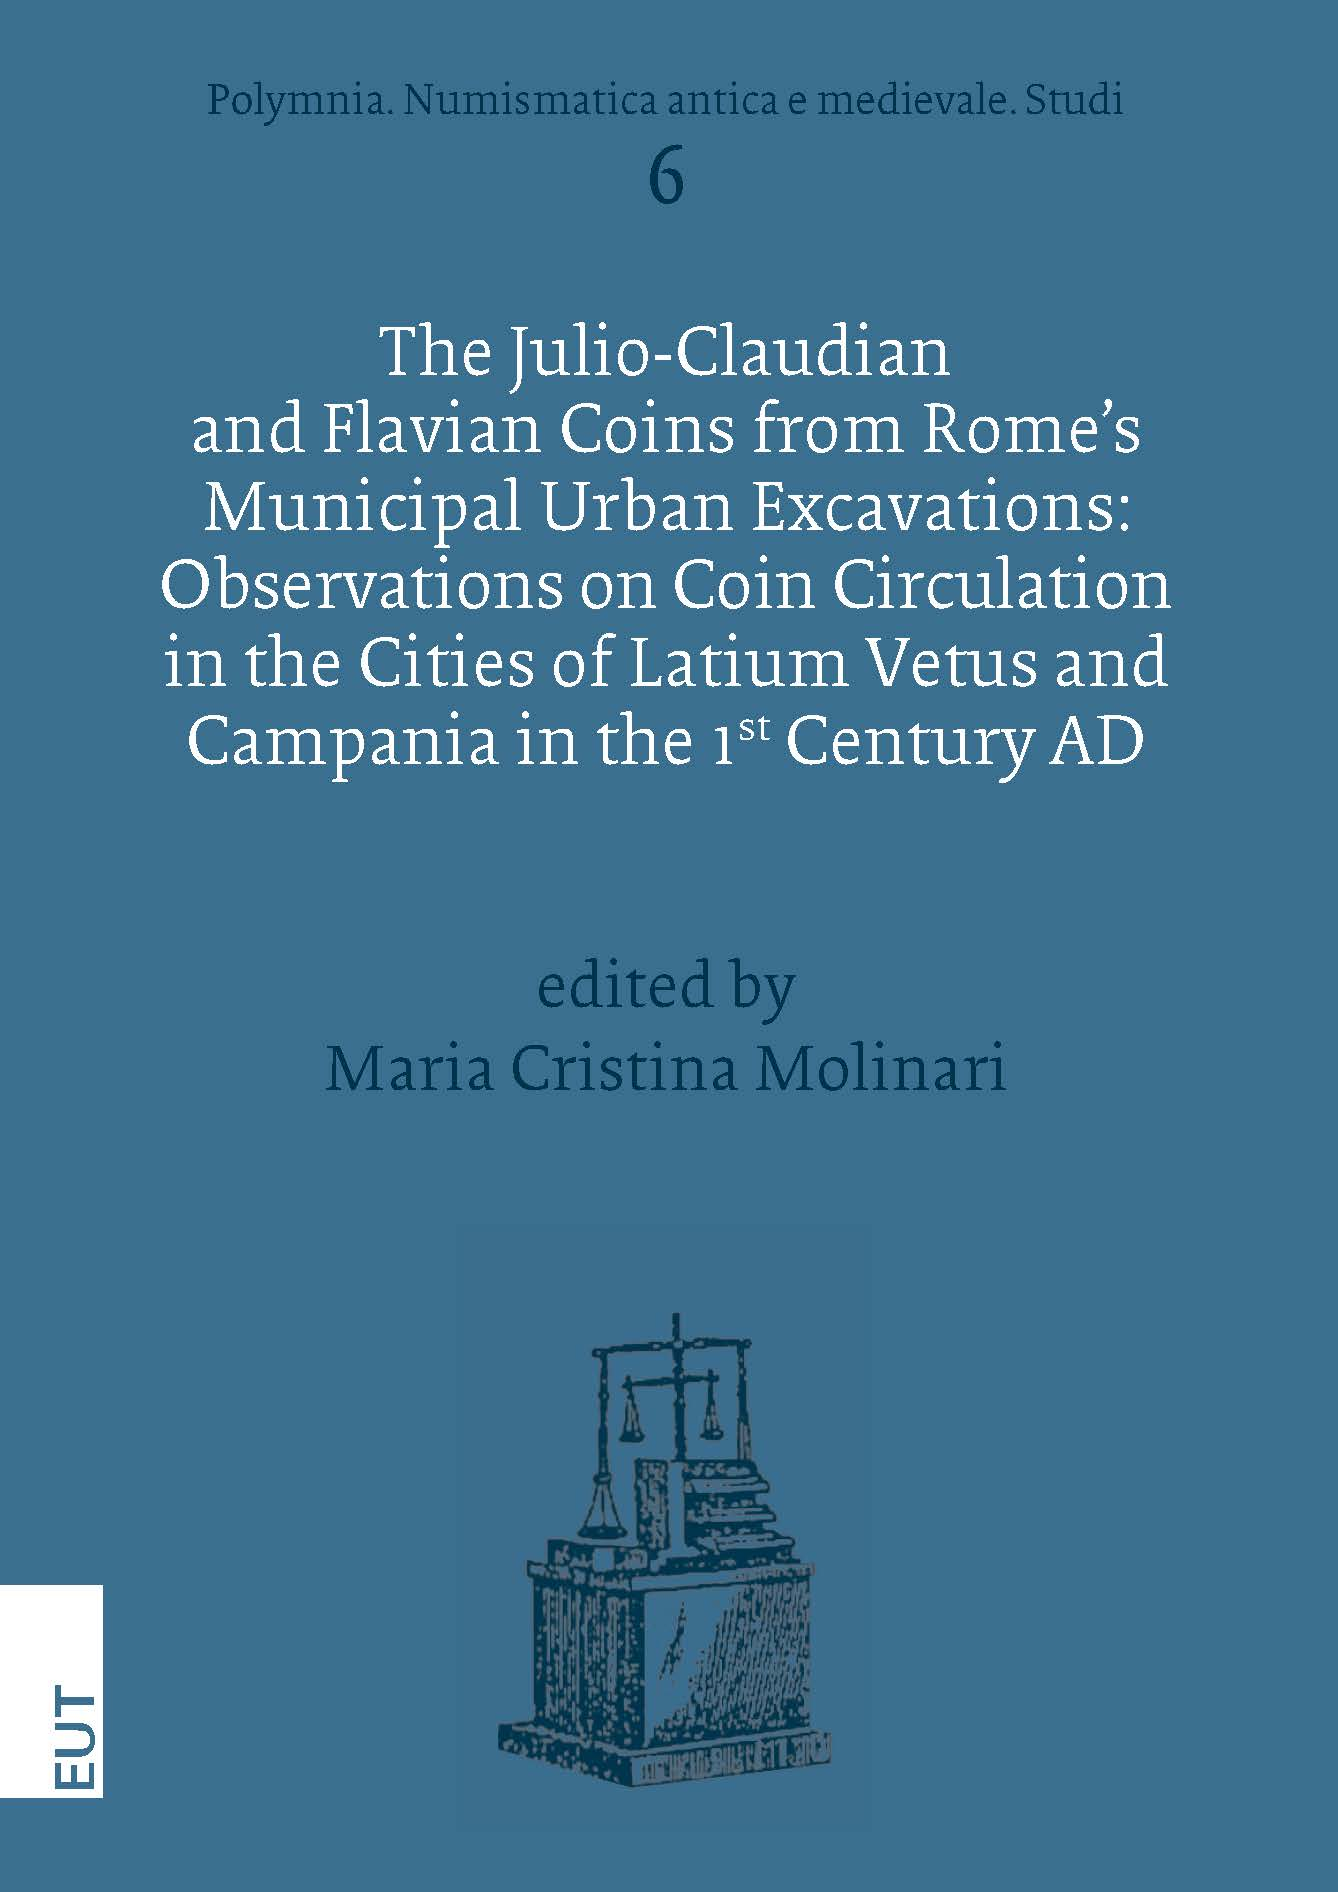 The Julio-Claudian and Flavian Coins from Rome's Municipal Urban Excavations: Observations on Coin Circulation in the Cities of Latium Vetus and Campania in the 1st Century AD